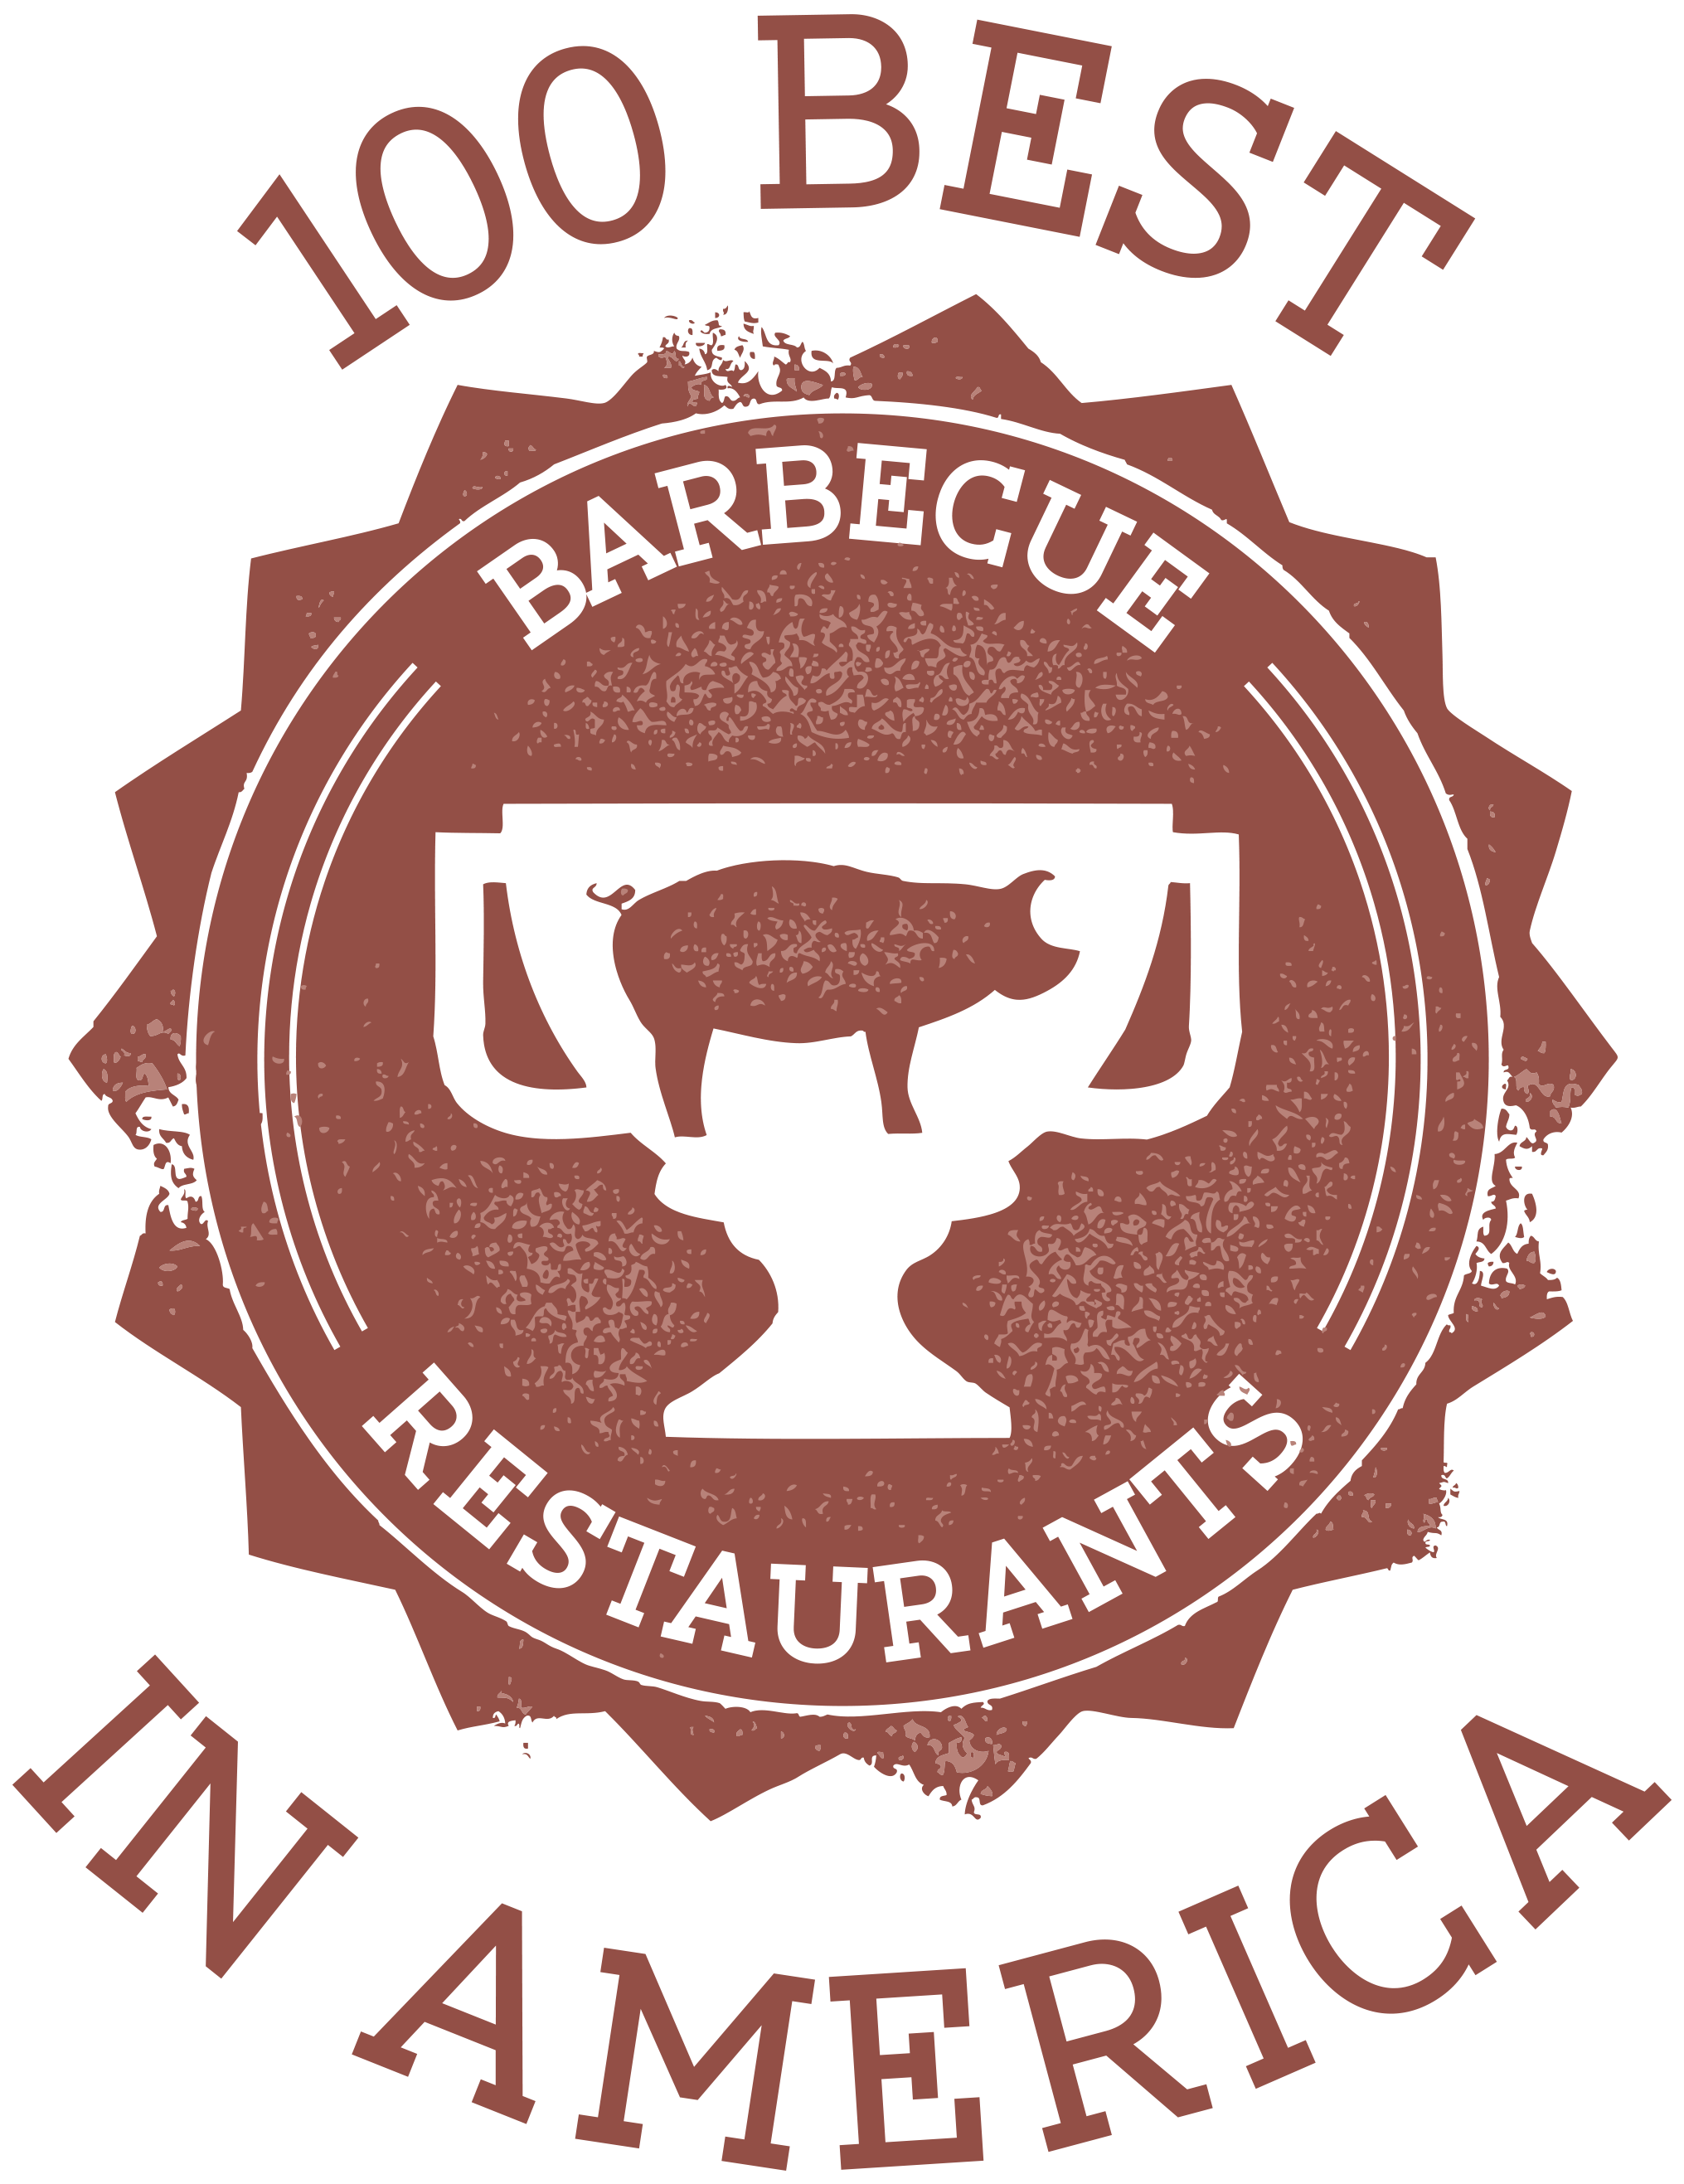 100 Best Motivational And Inspirational Quotes: The 100 Best Barbecue Restaurants In America